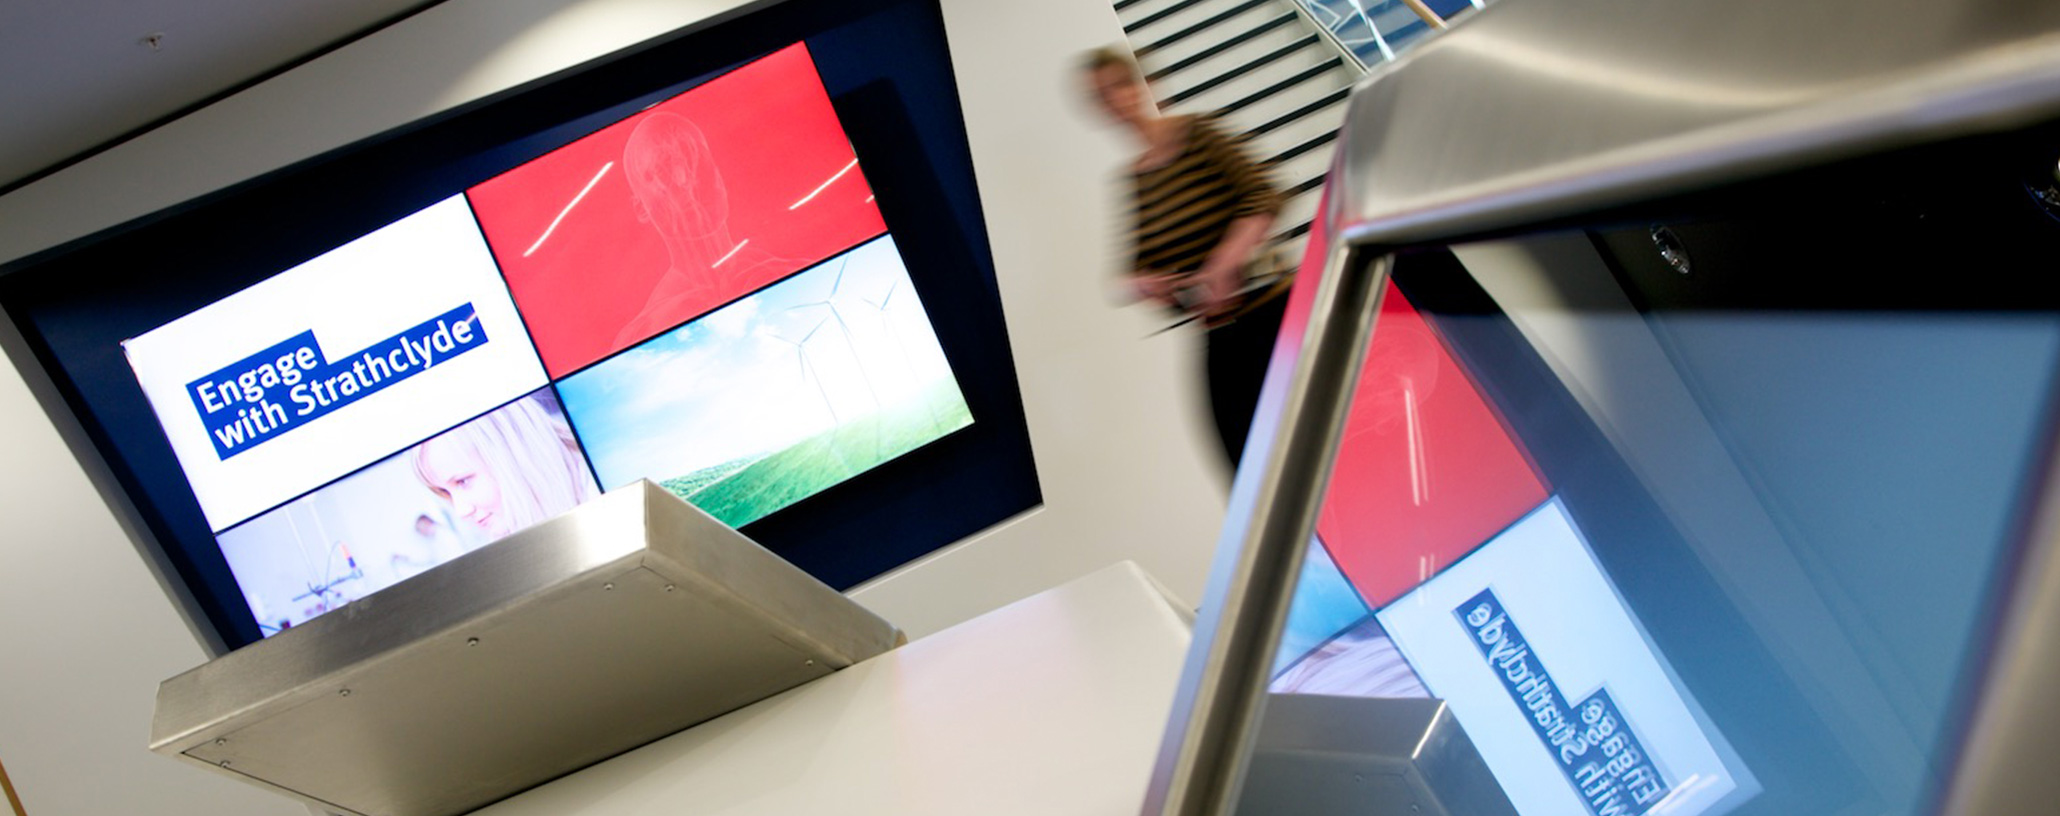 This image shows the TV display in the TIC building with the Engage with Strathclyde branding